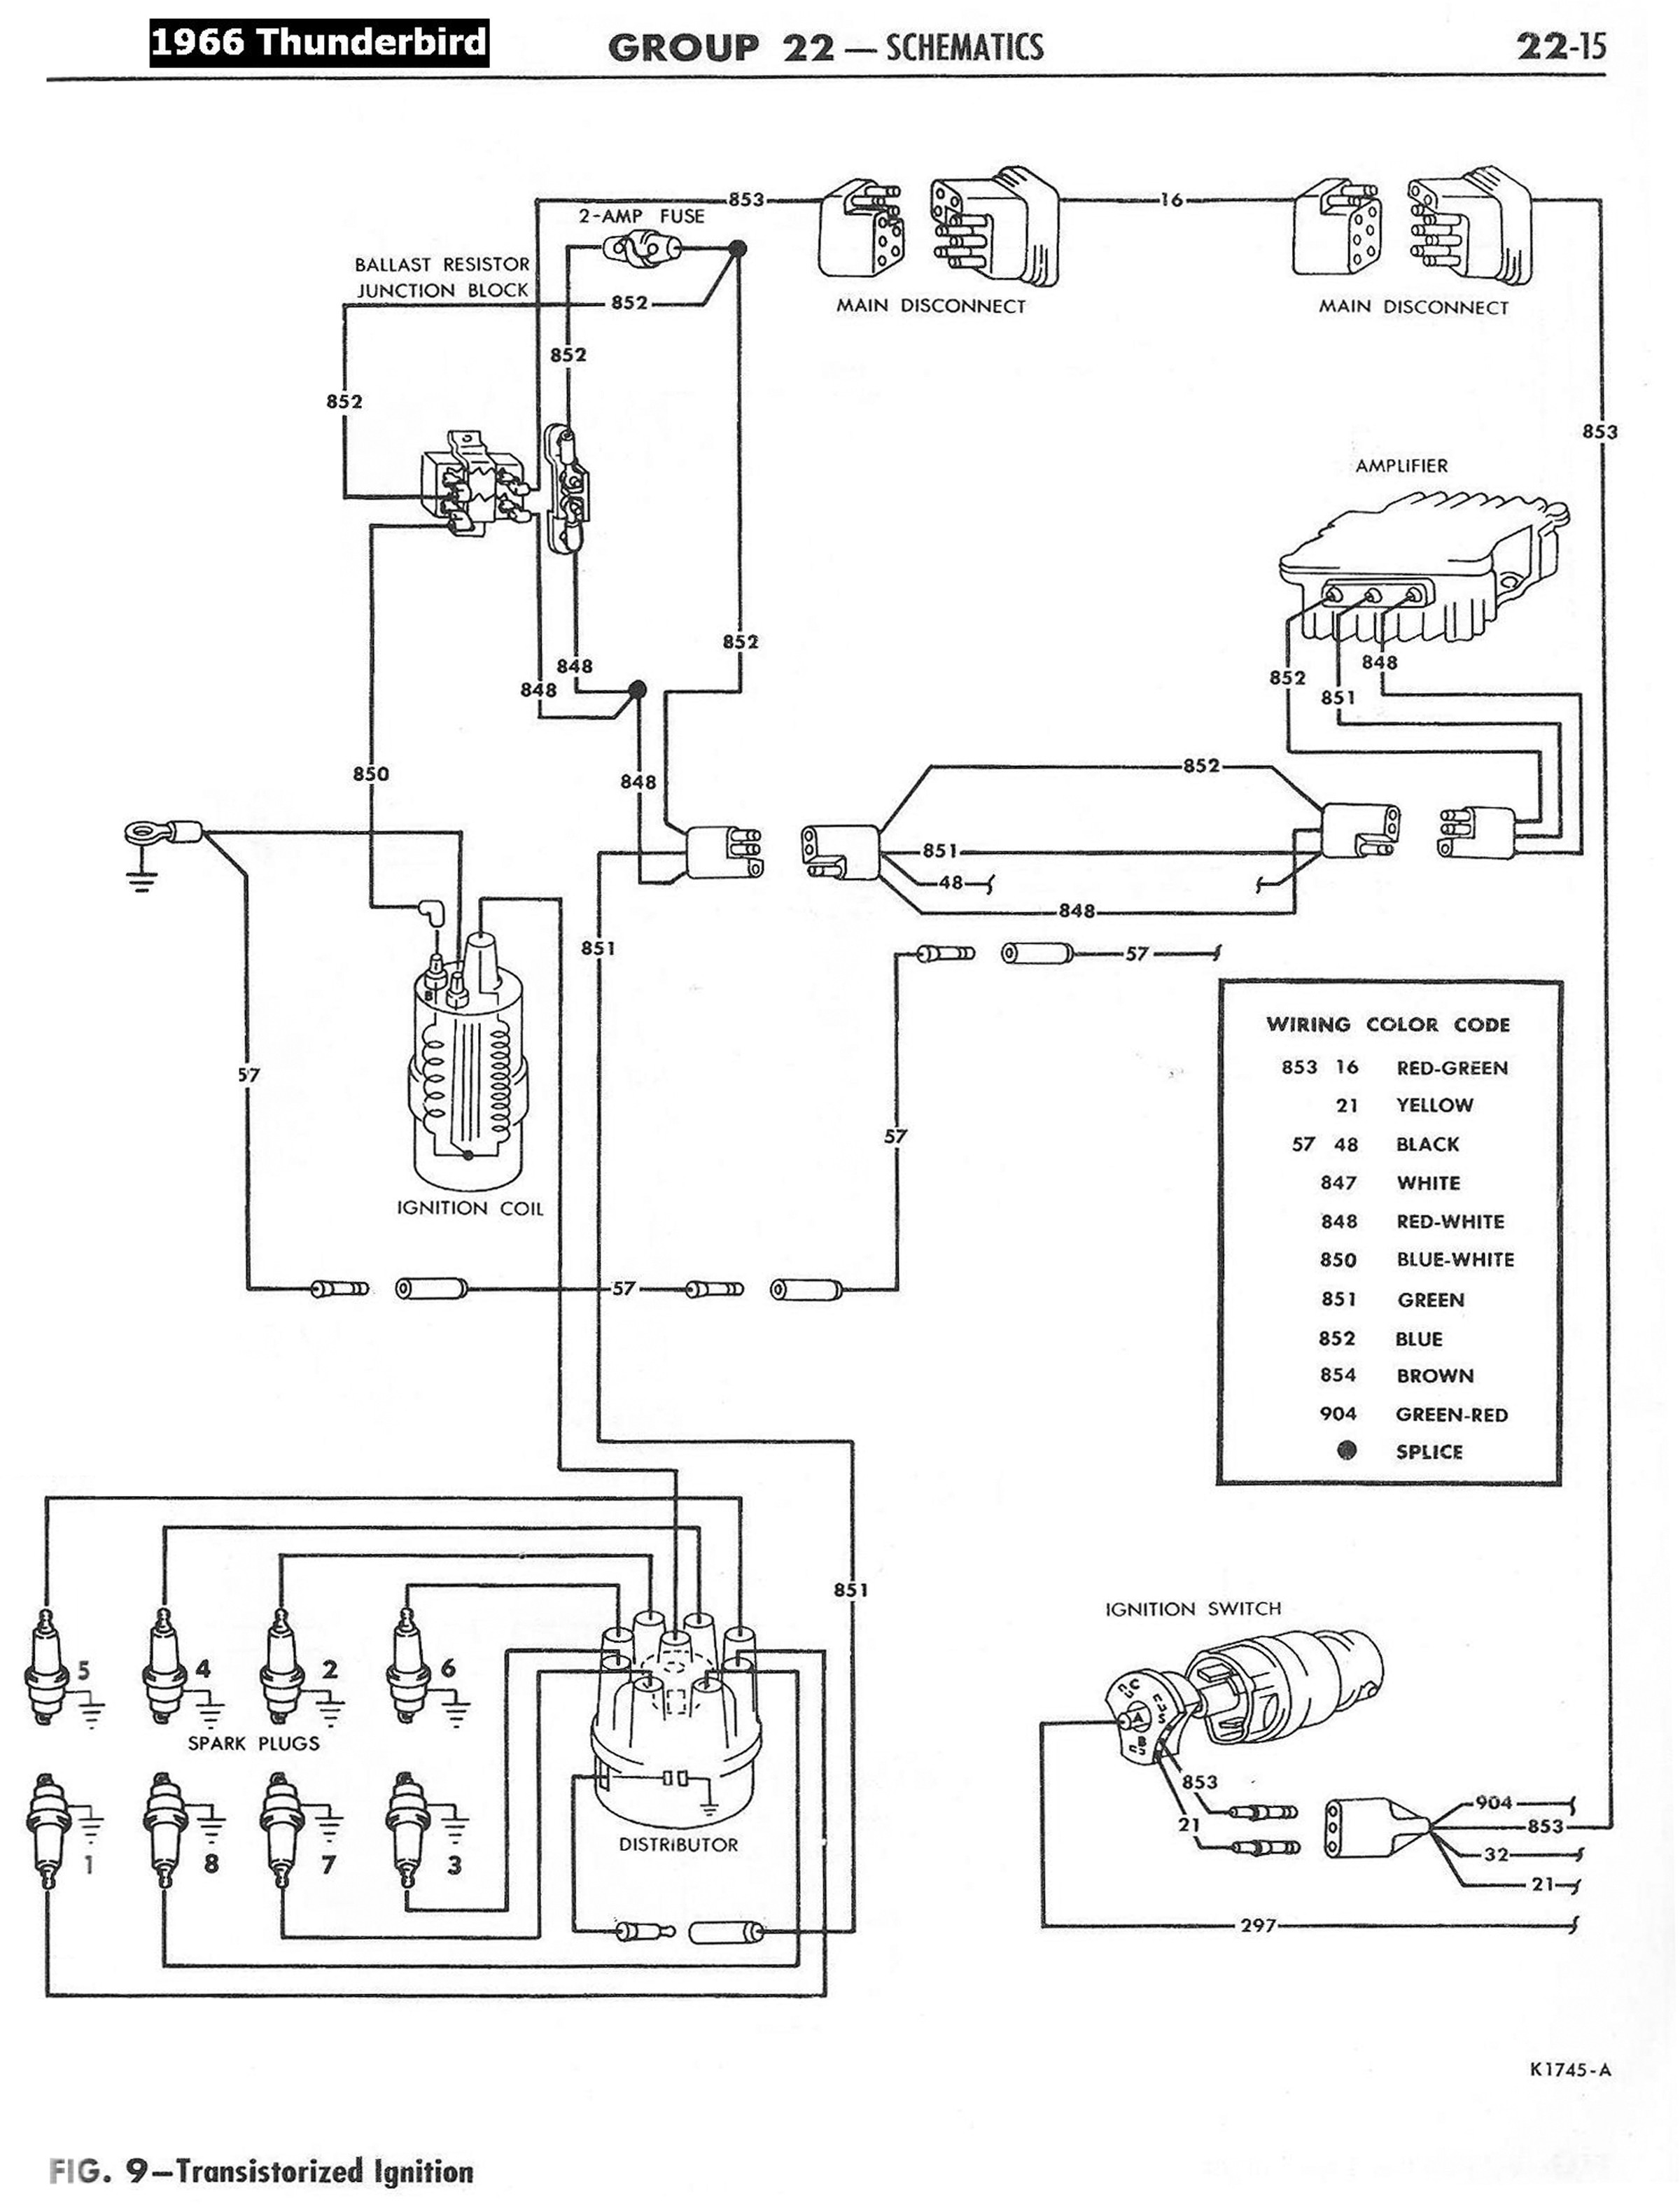 Car Ignition System Diagram Car Ignition System Wiring Diagram Transistor Type Ignition Of Car Ignition System Diagram